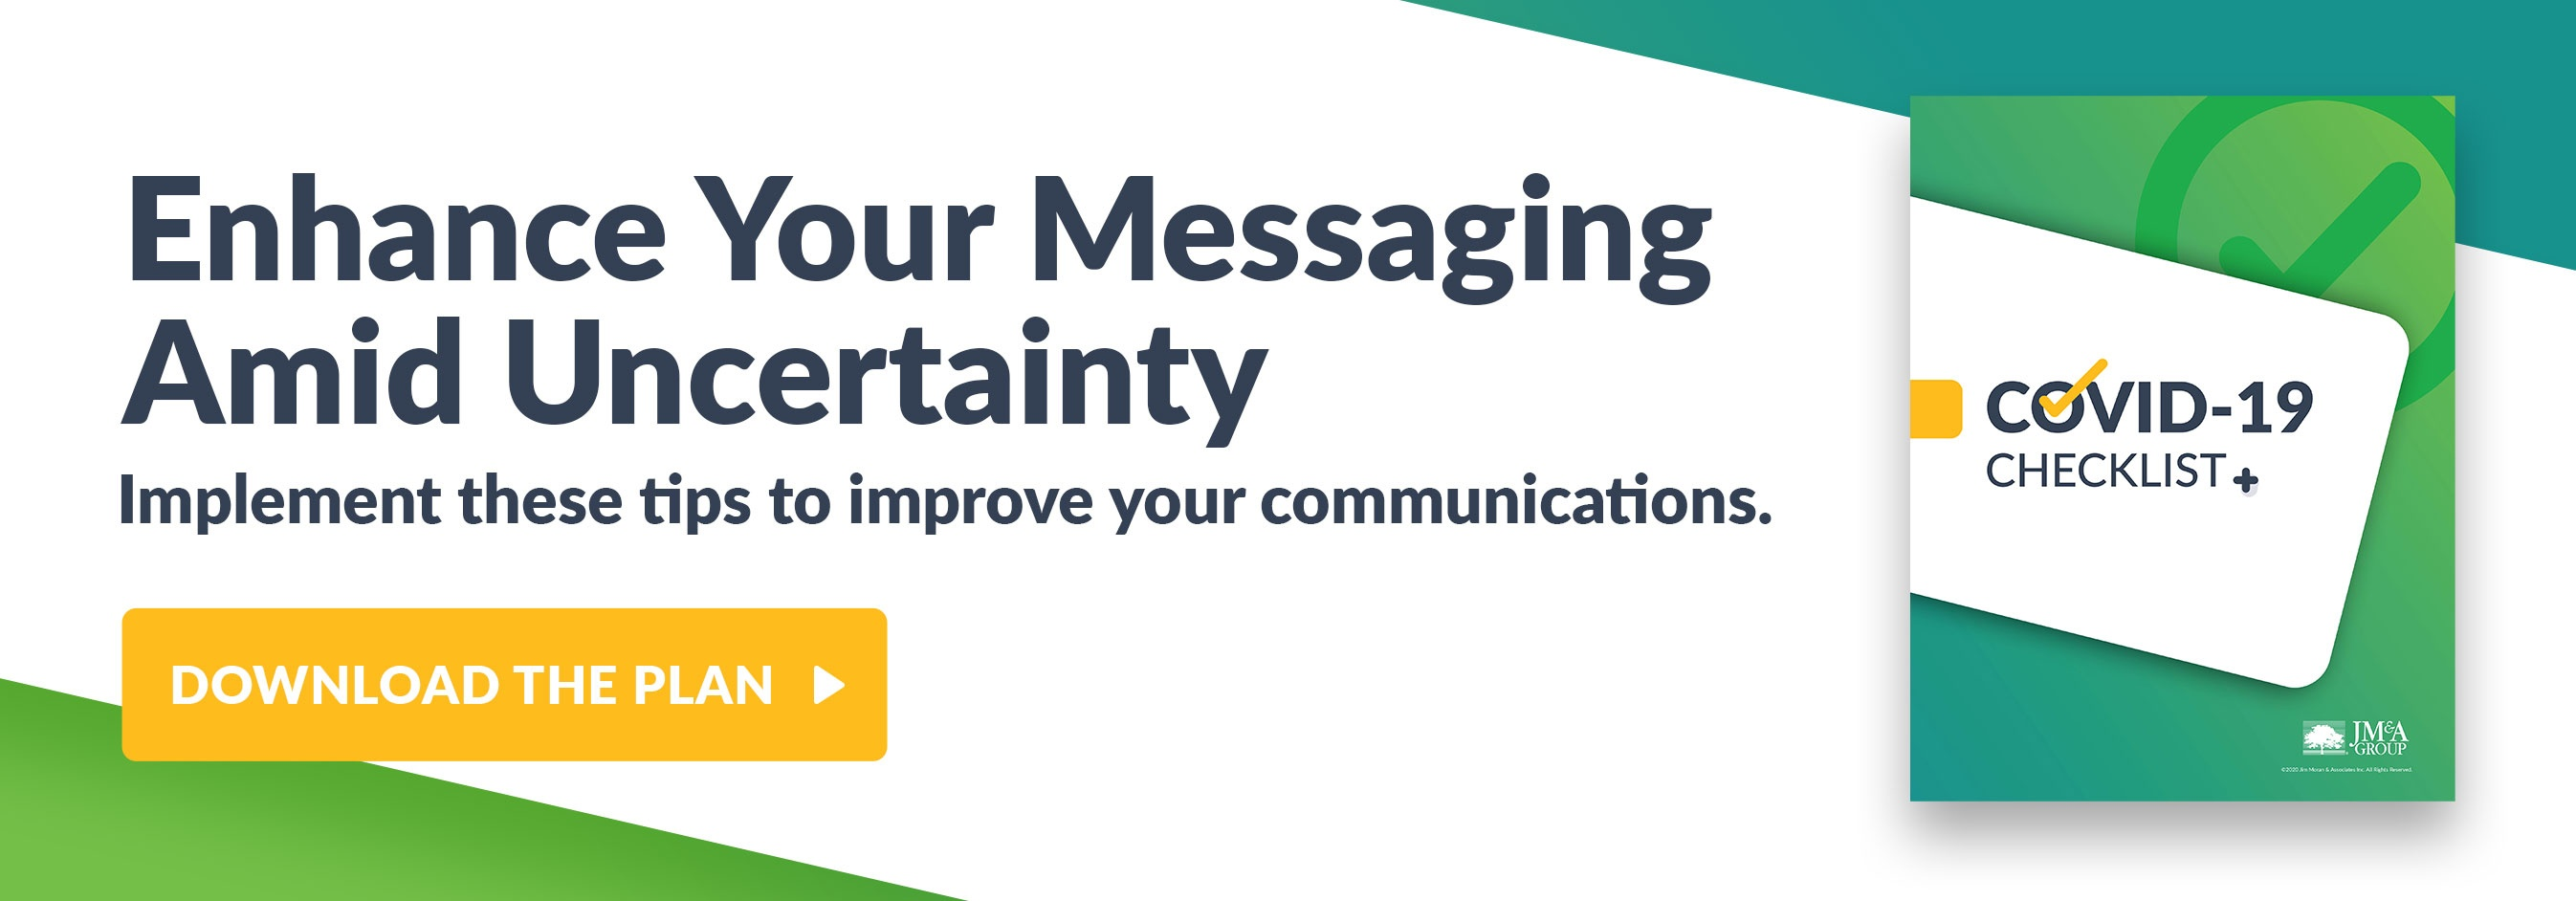 Enhance Your Messaging Amid Uncertainty - Download the Plan